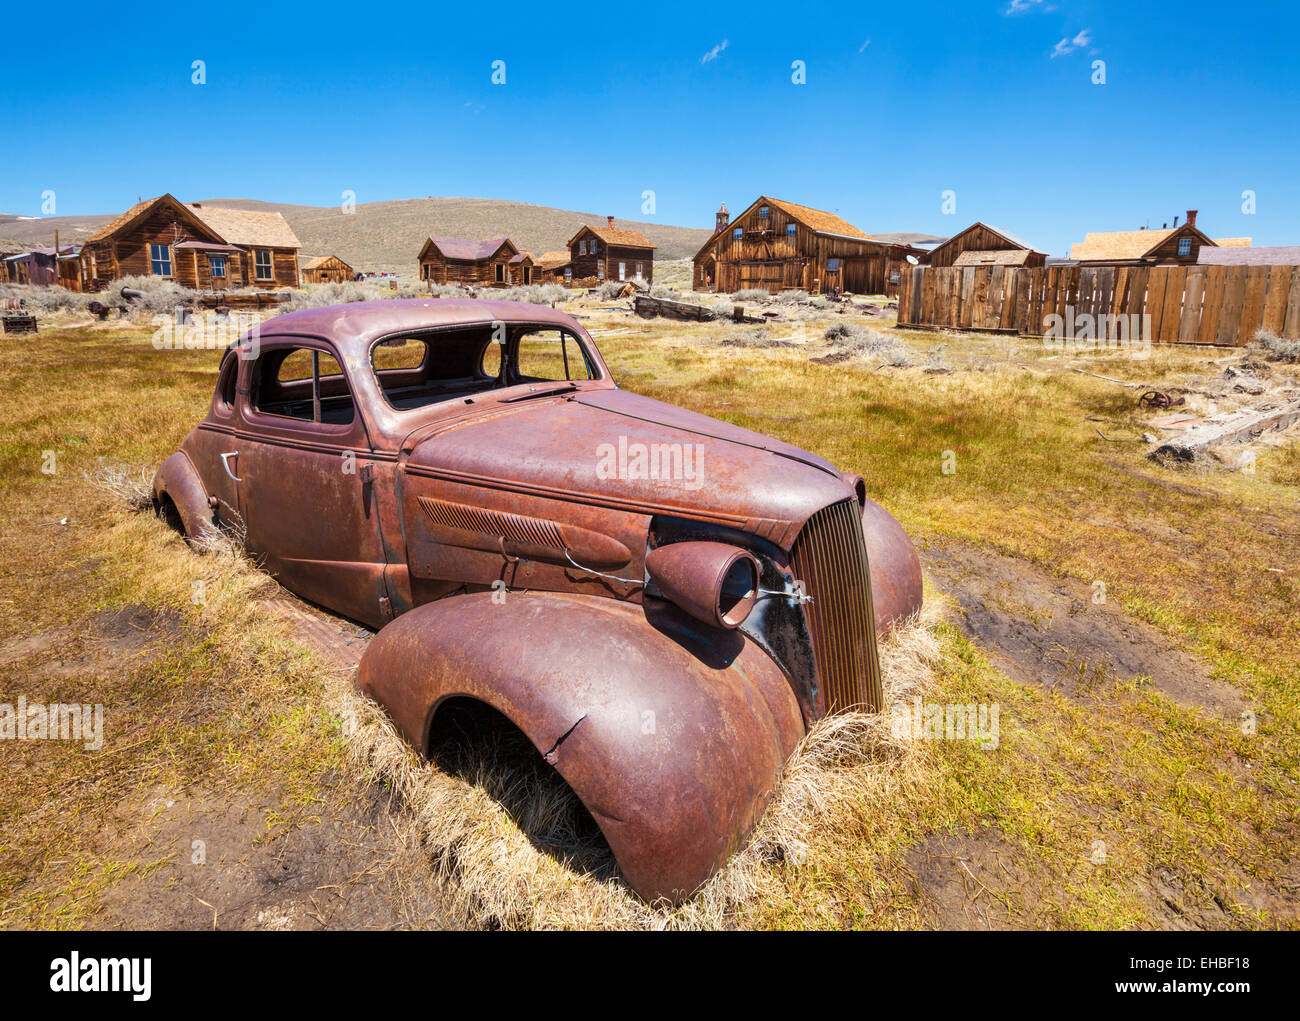 Rusting car in Bodie ghost town Bodie State Historic Park California USA United States of America - Stock Image